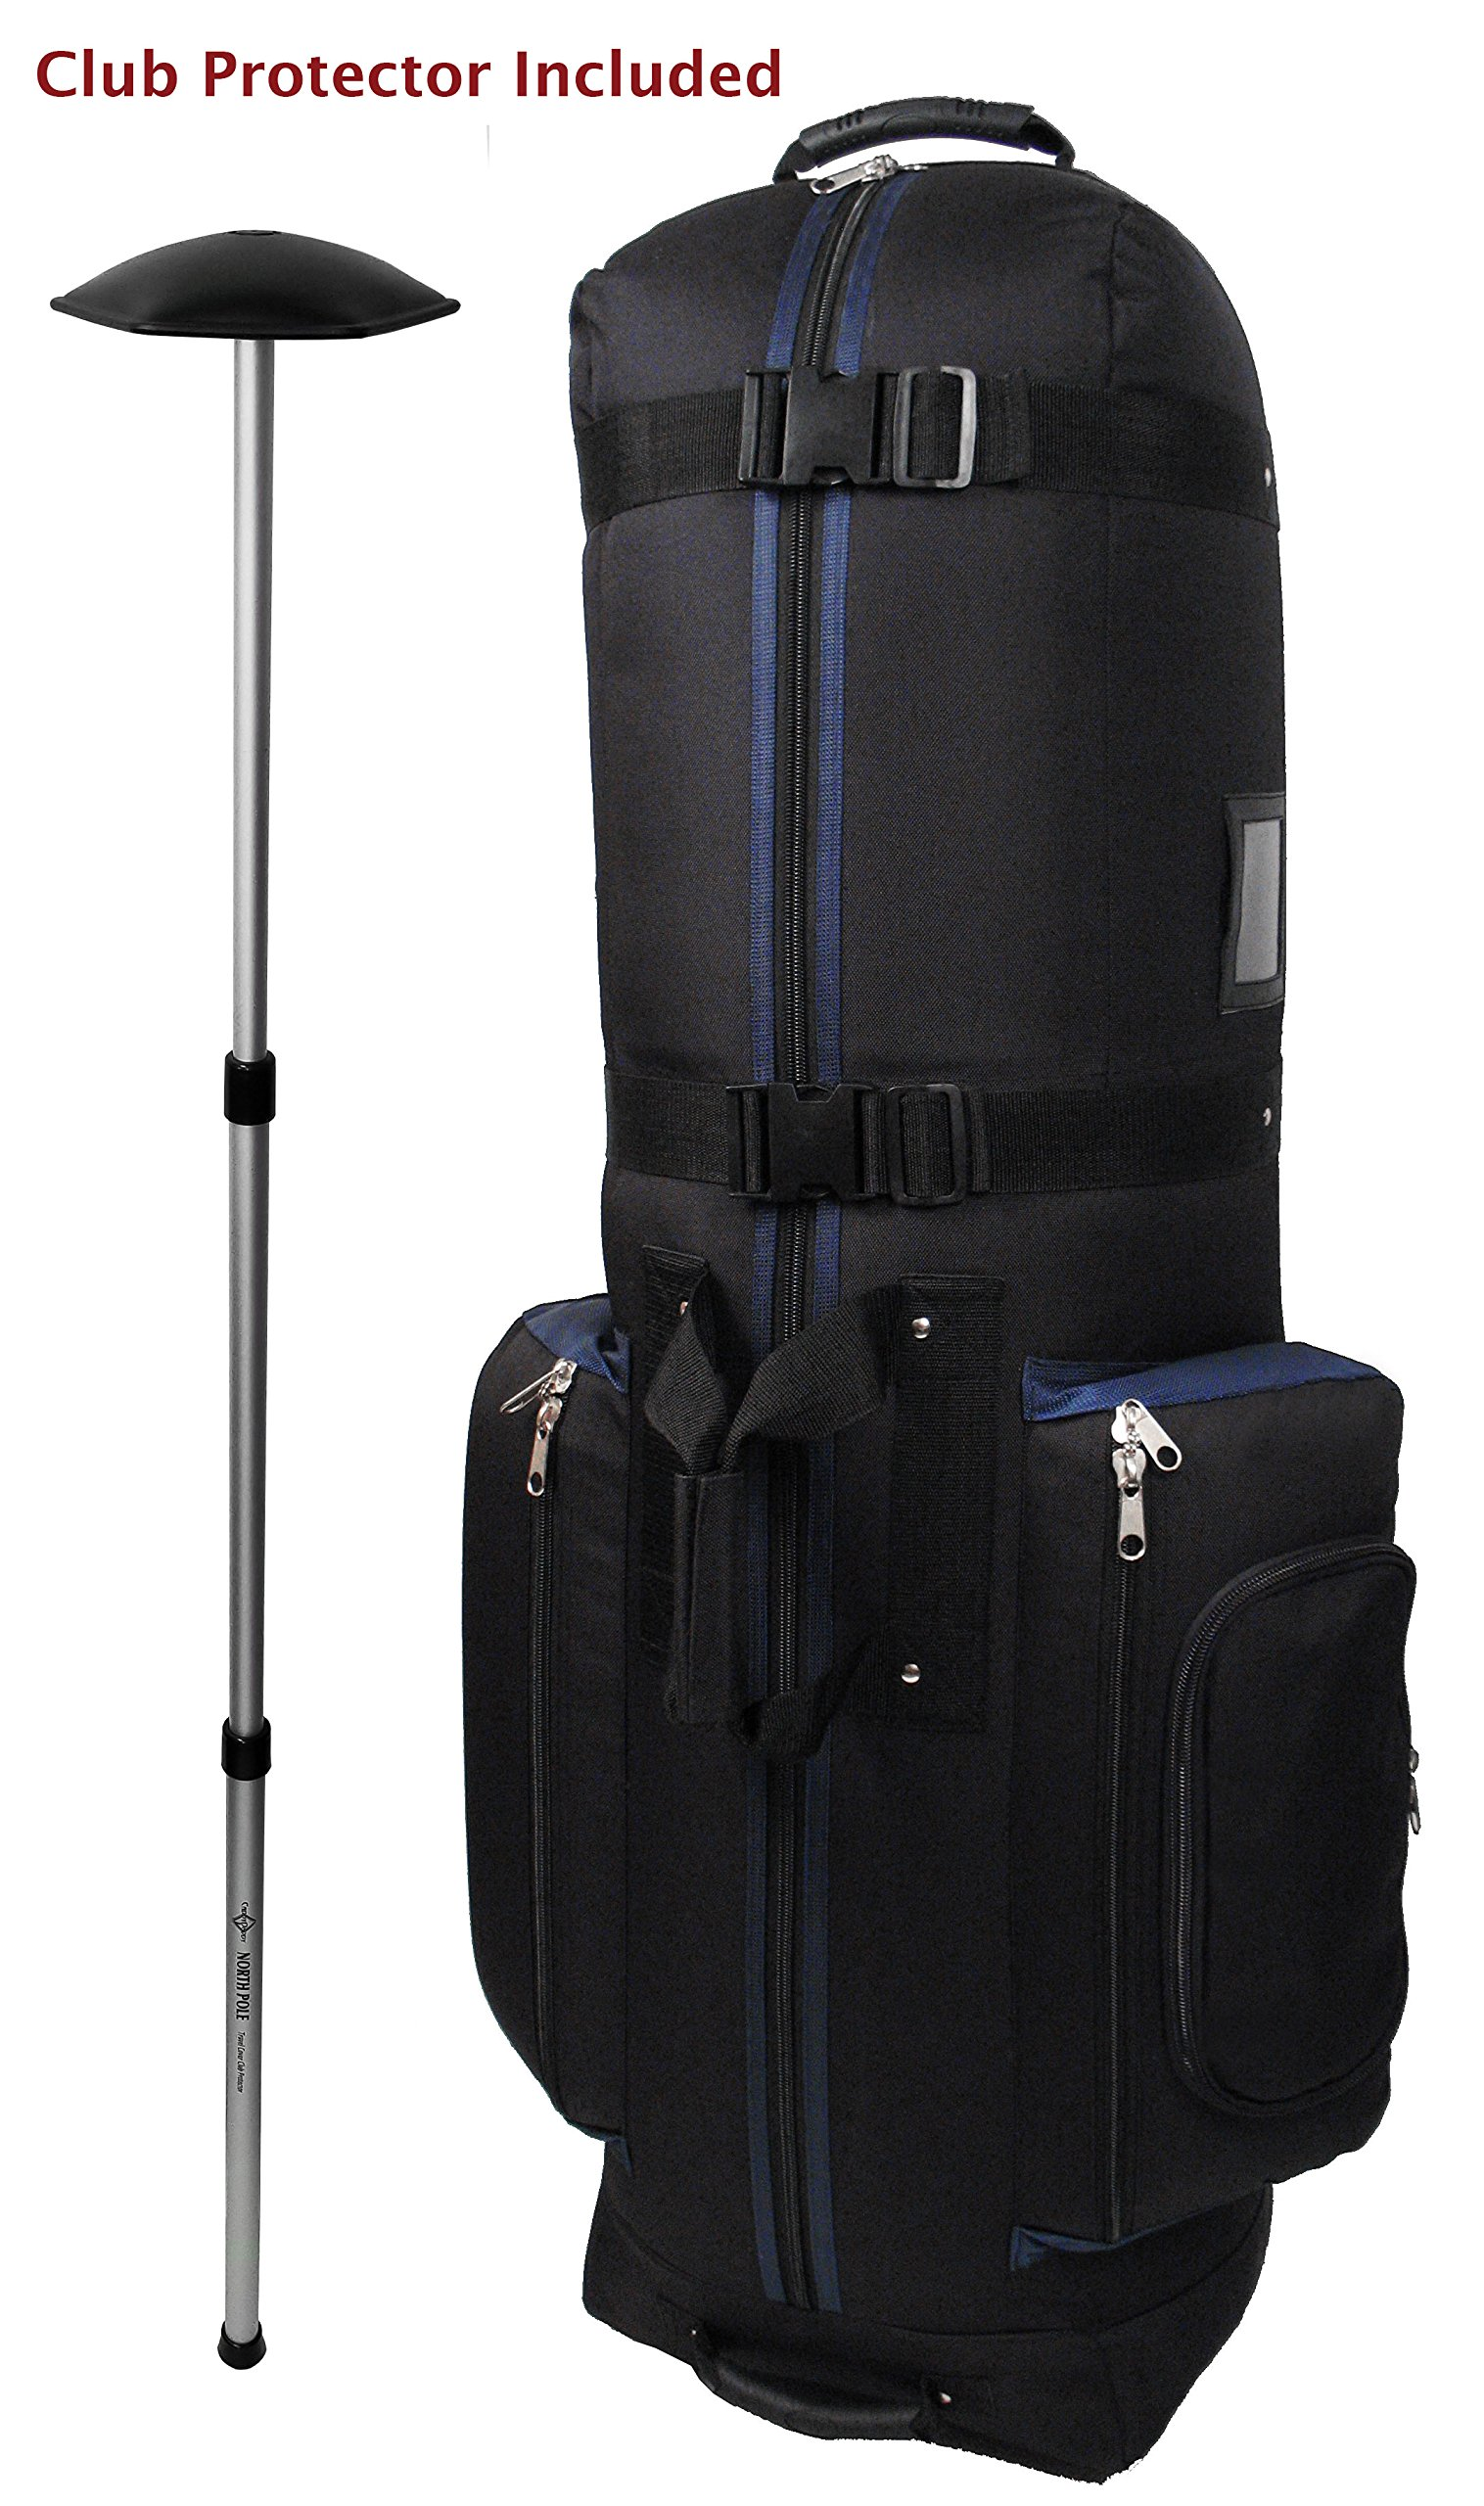 CaddyDaddy Golf CDYCON2NP Constrictor with North Pole Club Protector Golf Bag Travel Cover, Black/Navy by CaddyDaddy